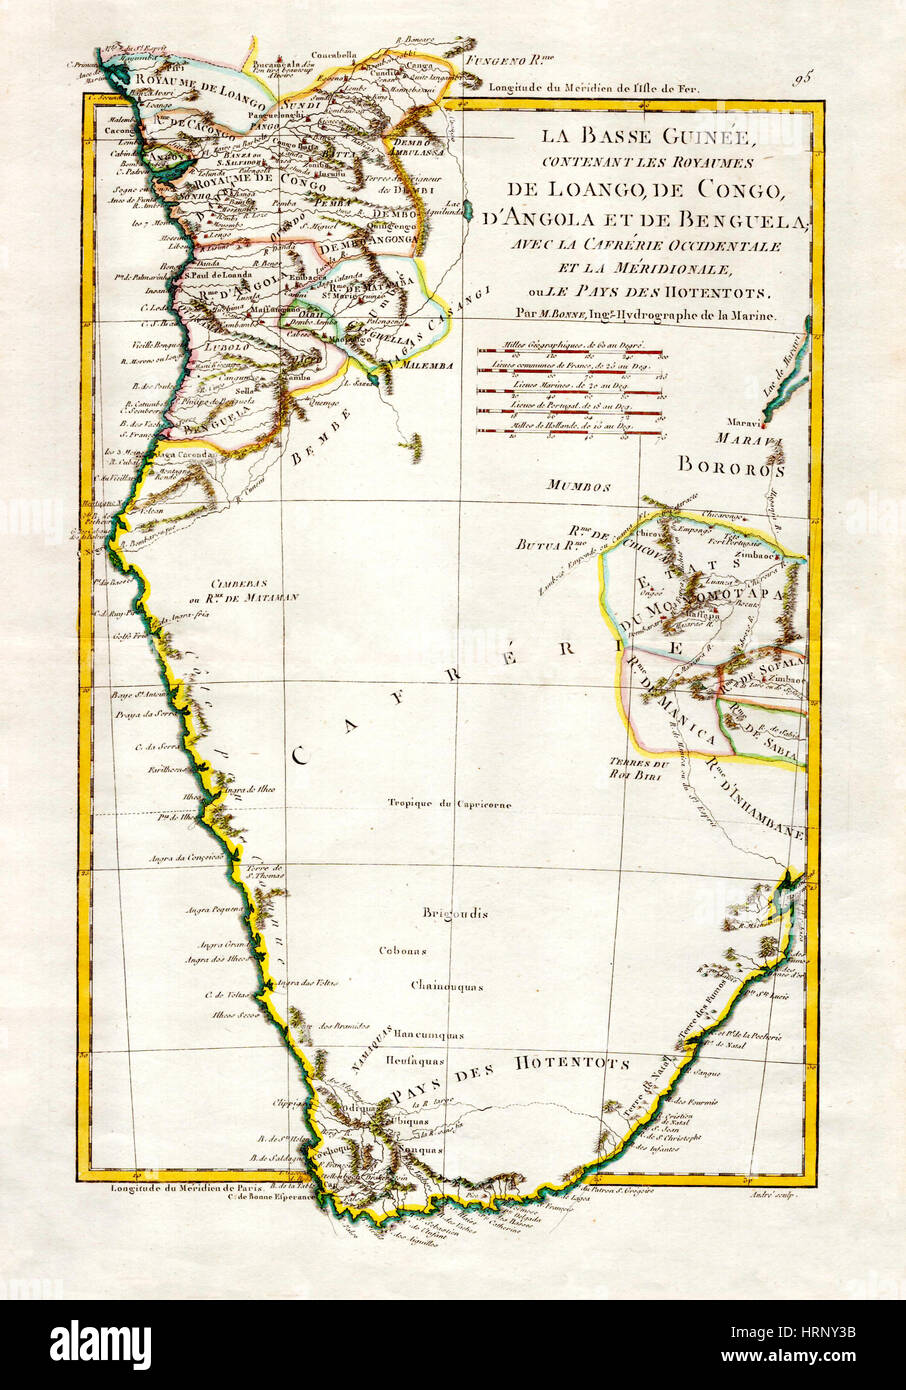 Map of Angola and the Congo, 1788 - Stock Image